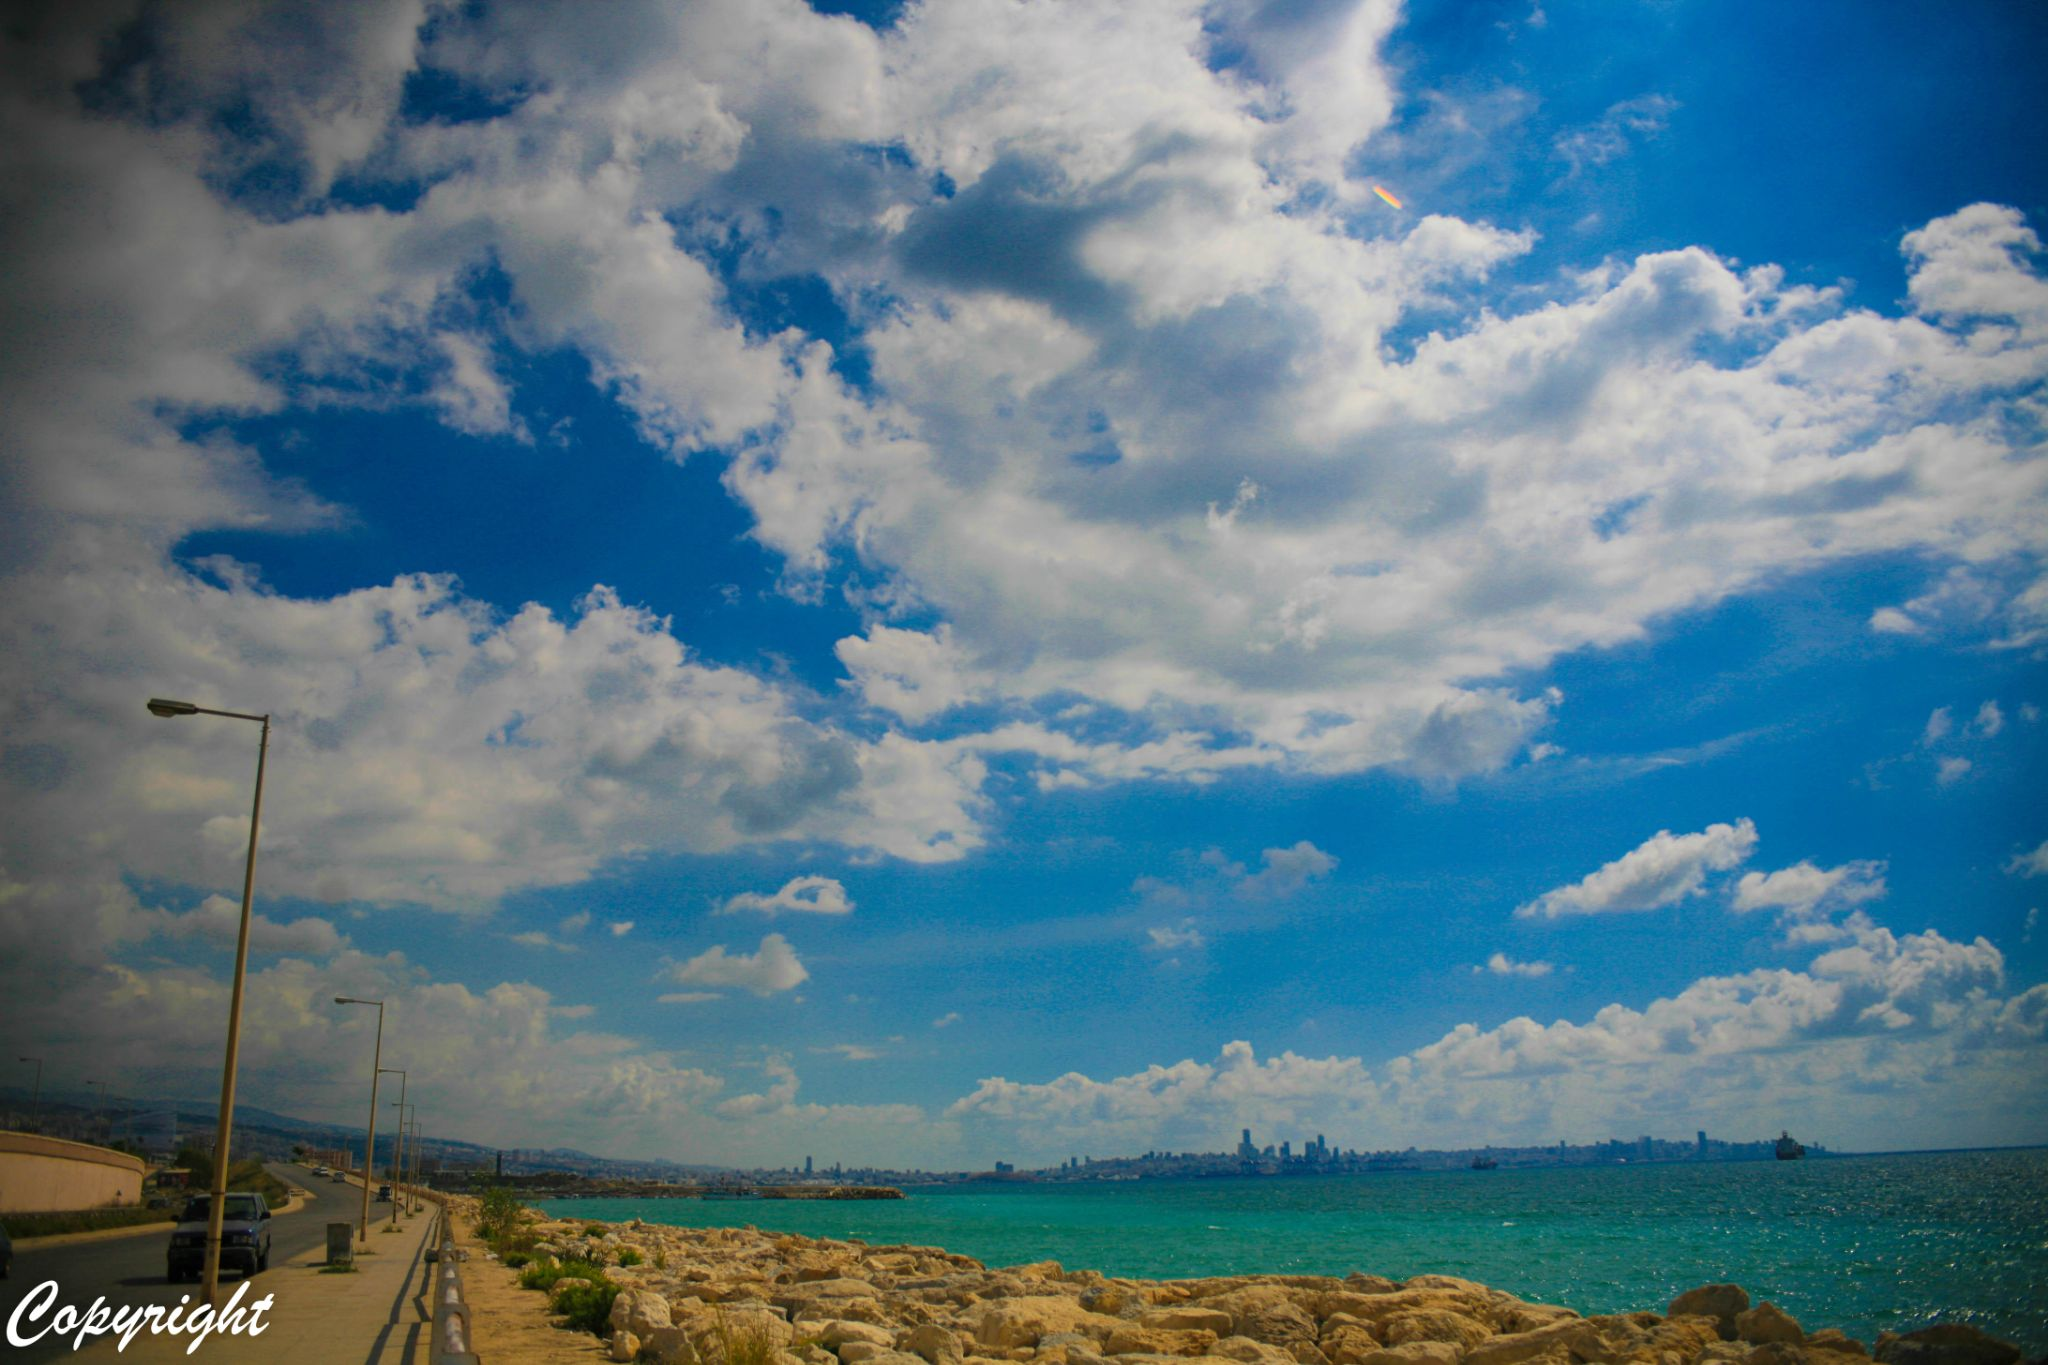 IMG_0025 by Issa Doumit